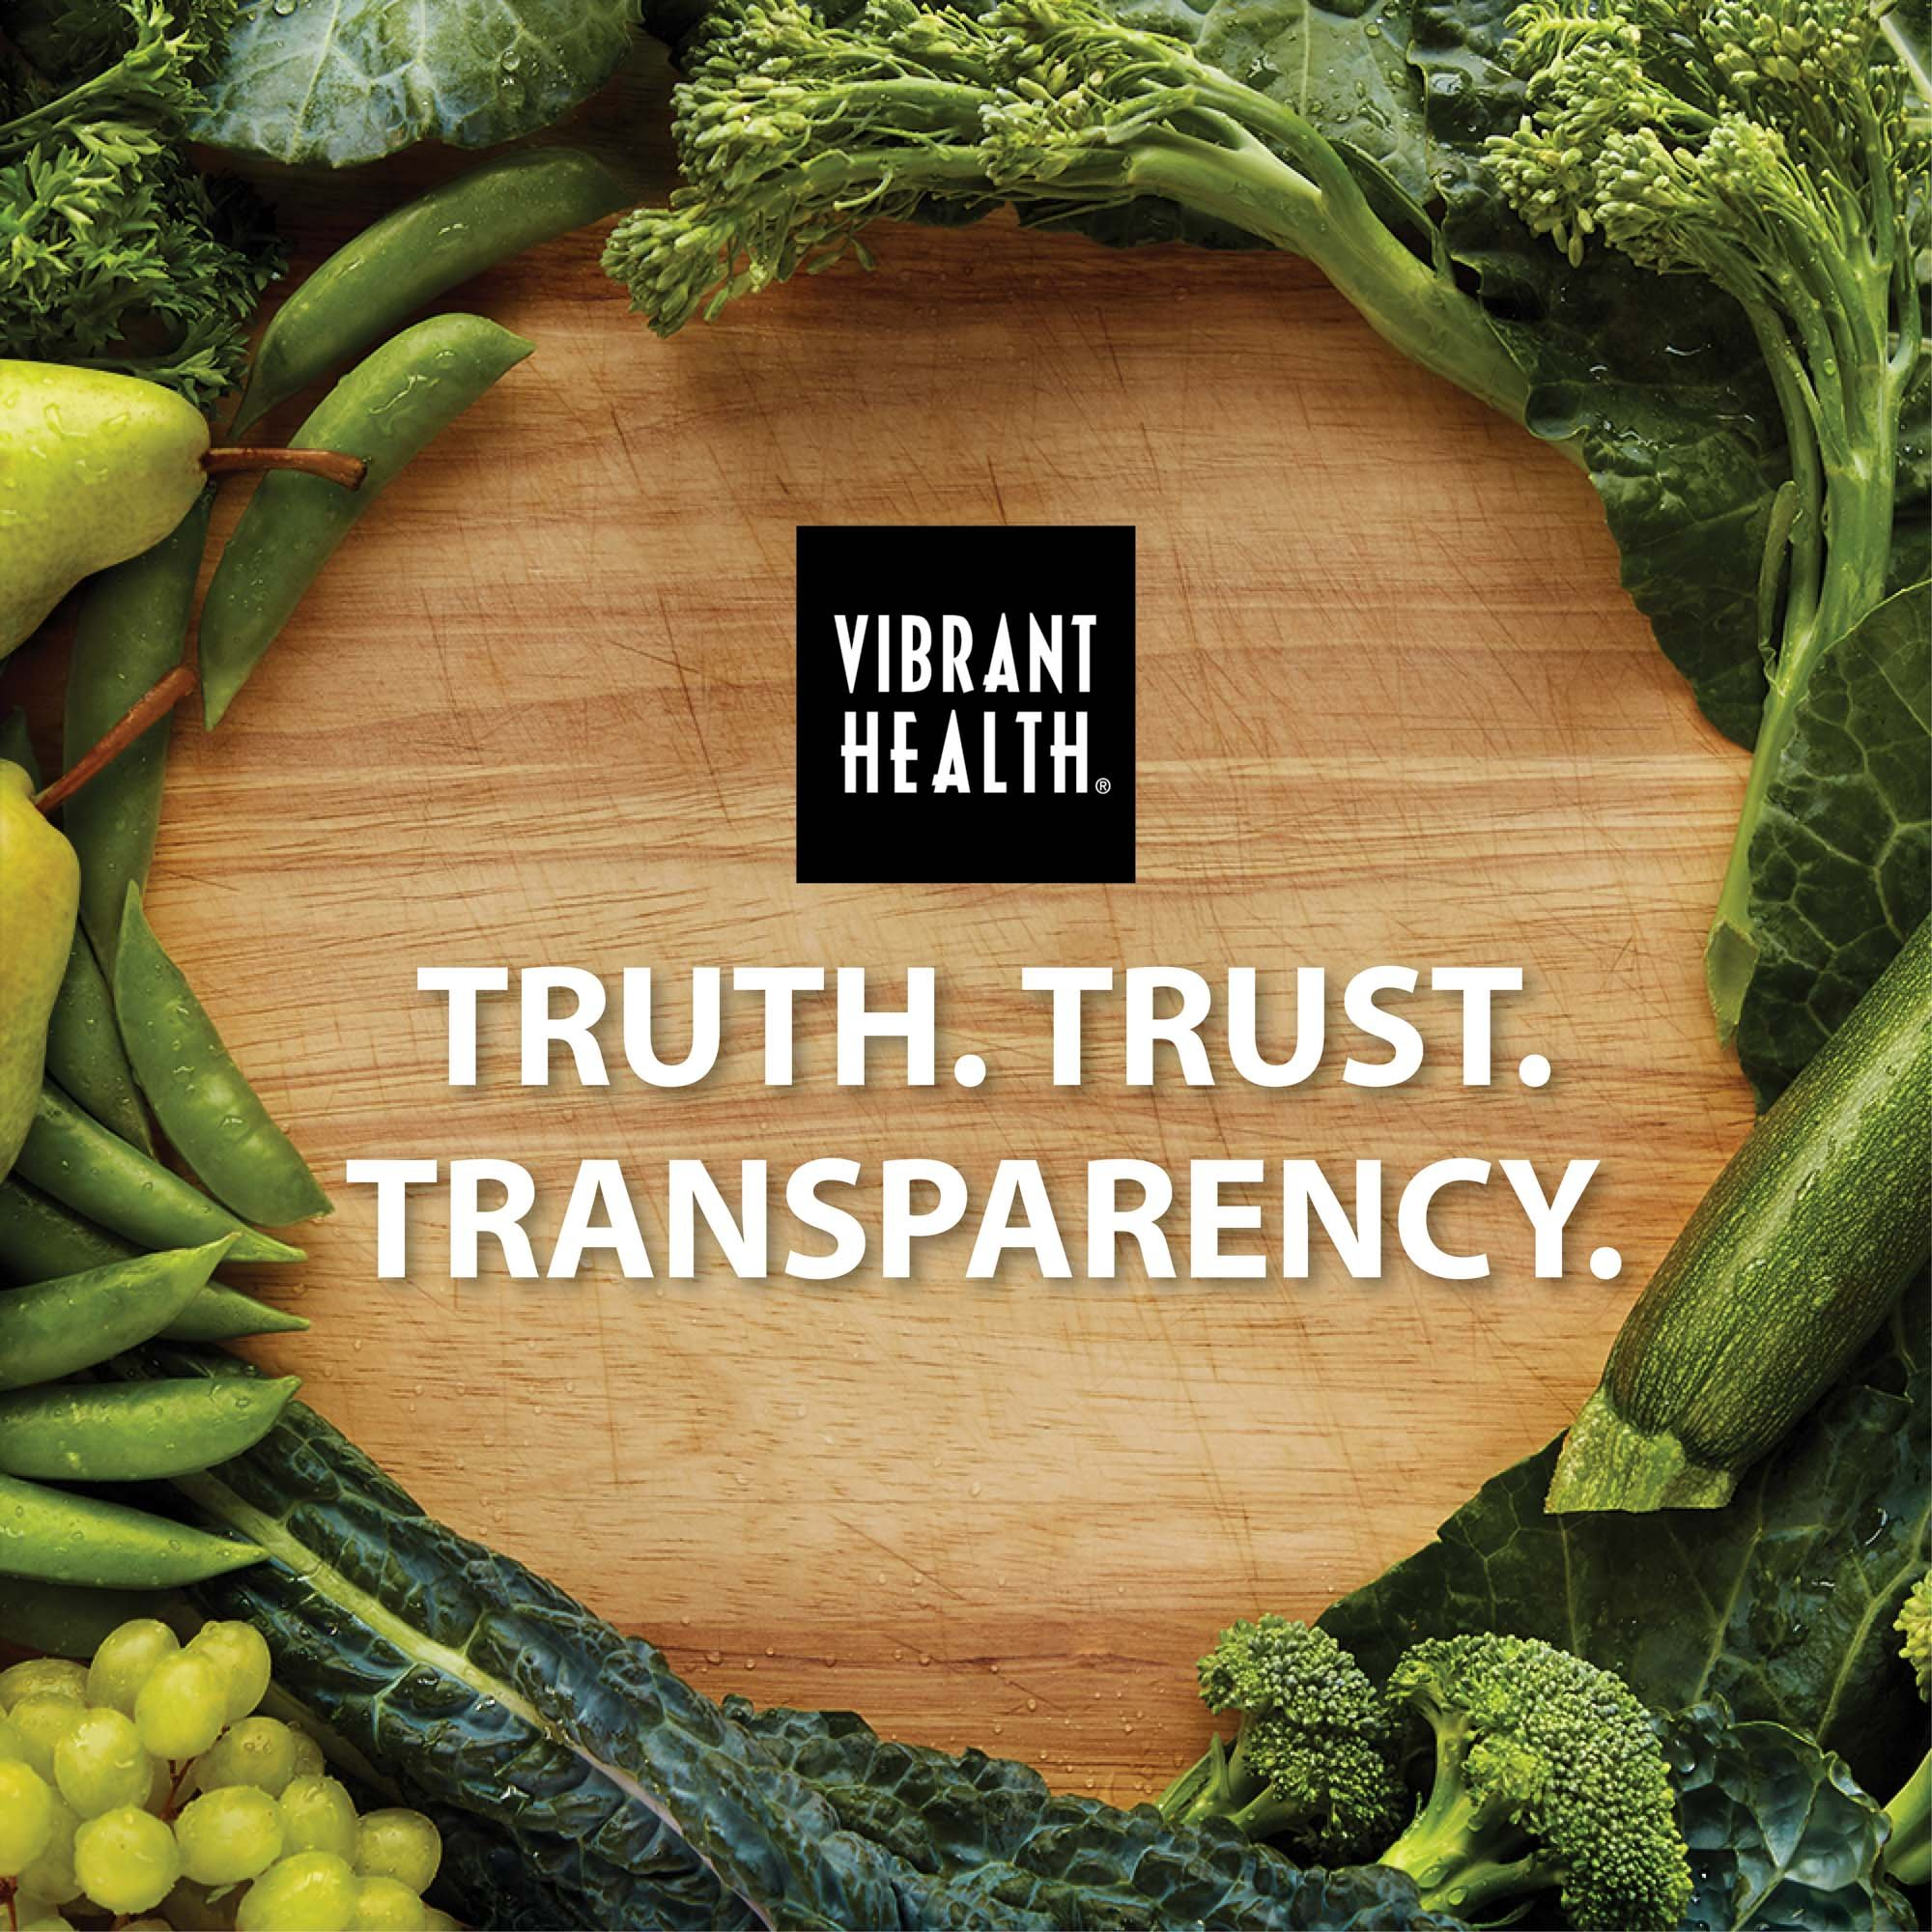 Vibrant Health - Green Vibrance, Plant-based Daily Superfood + Protein and Antioxidants, 15 Packets by Vibrant Health (Image #10)